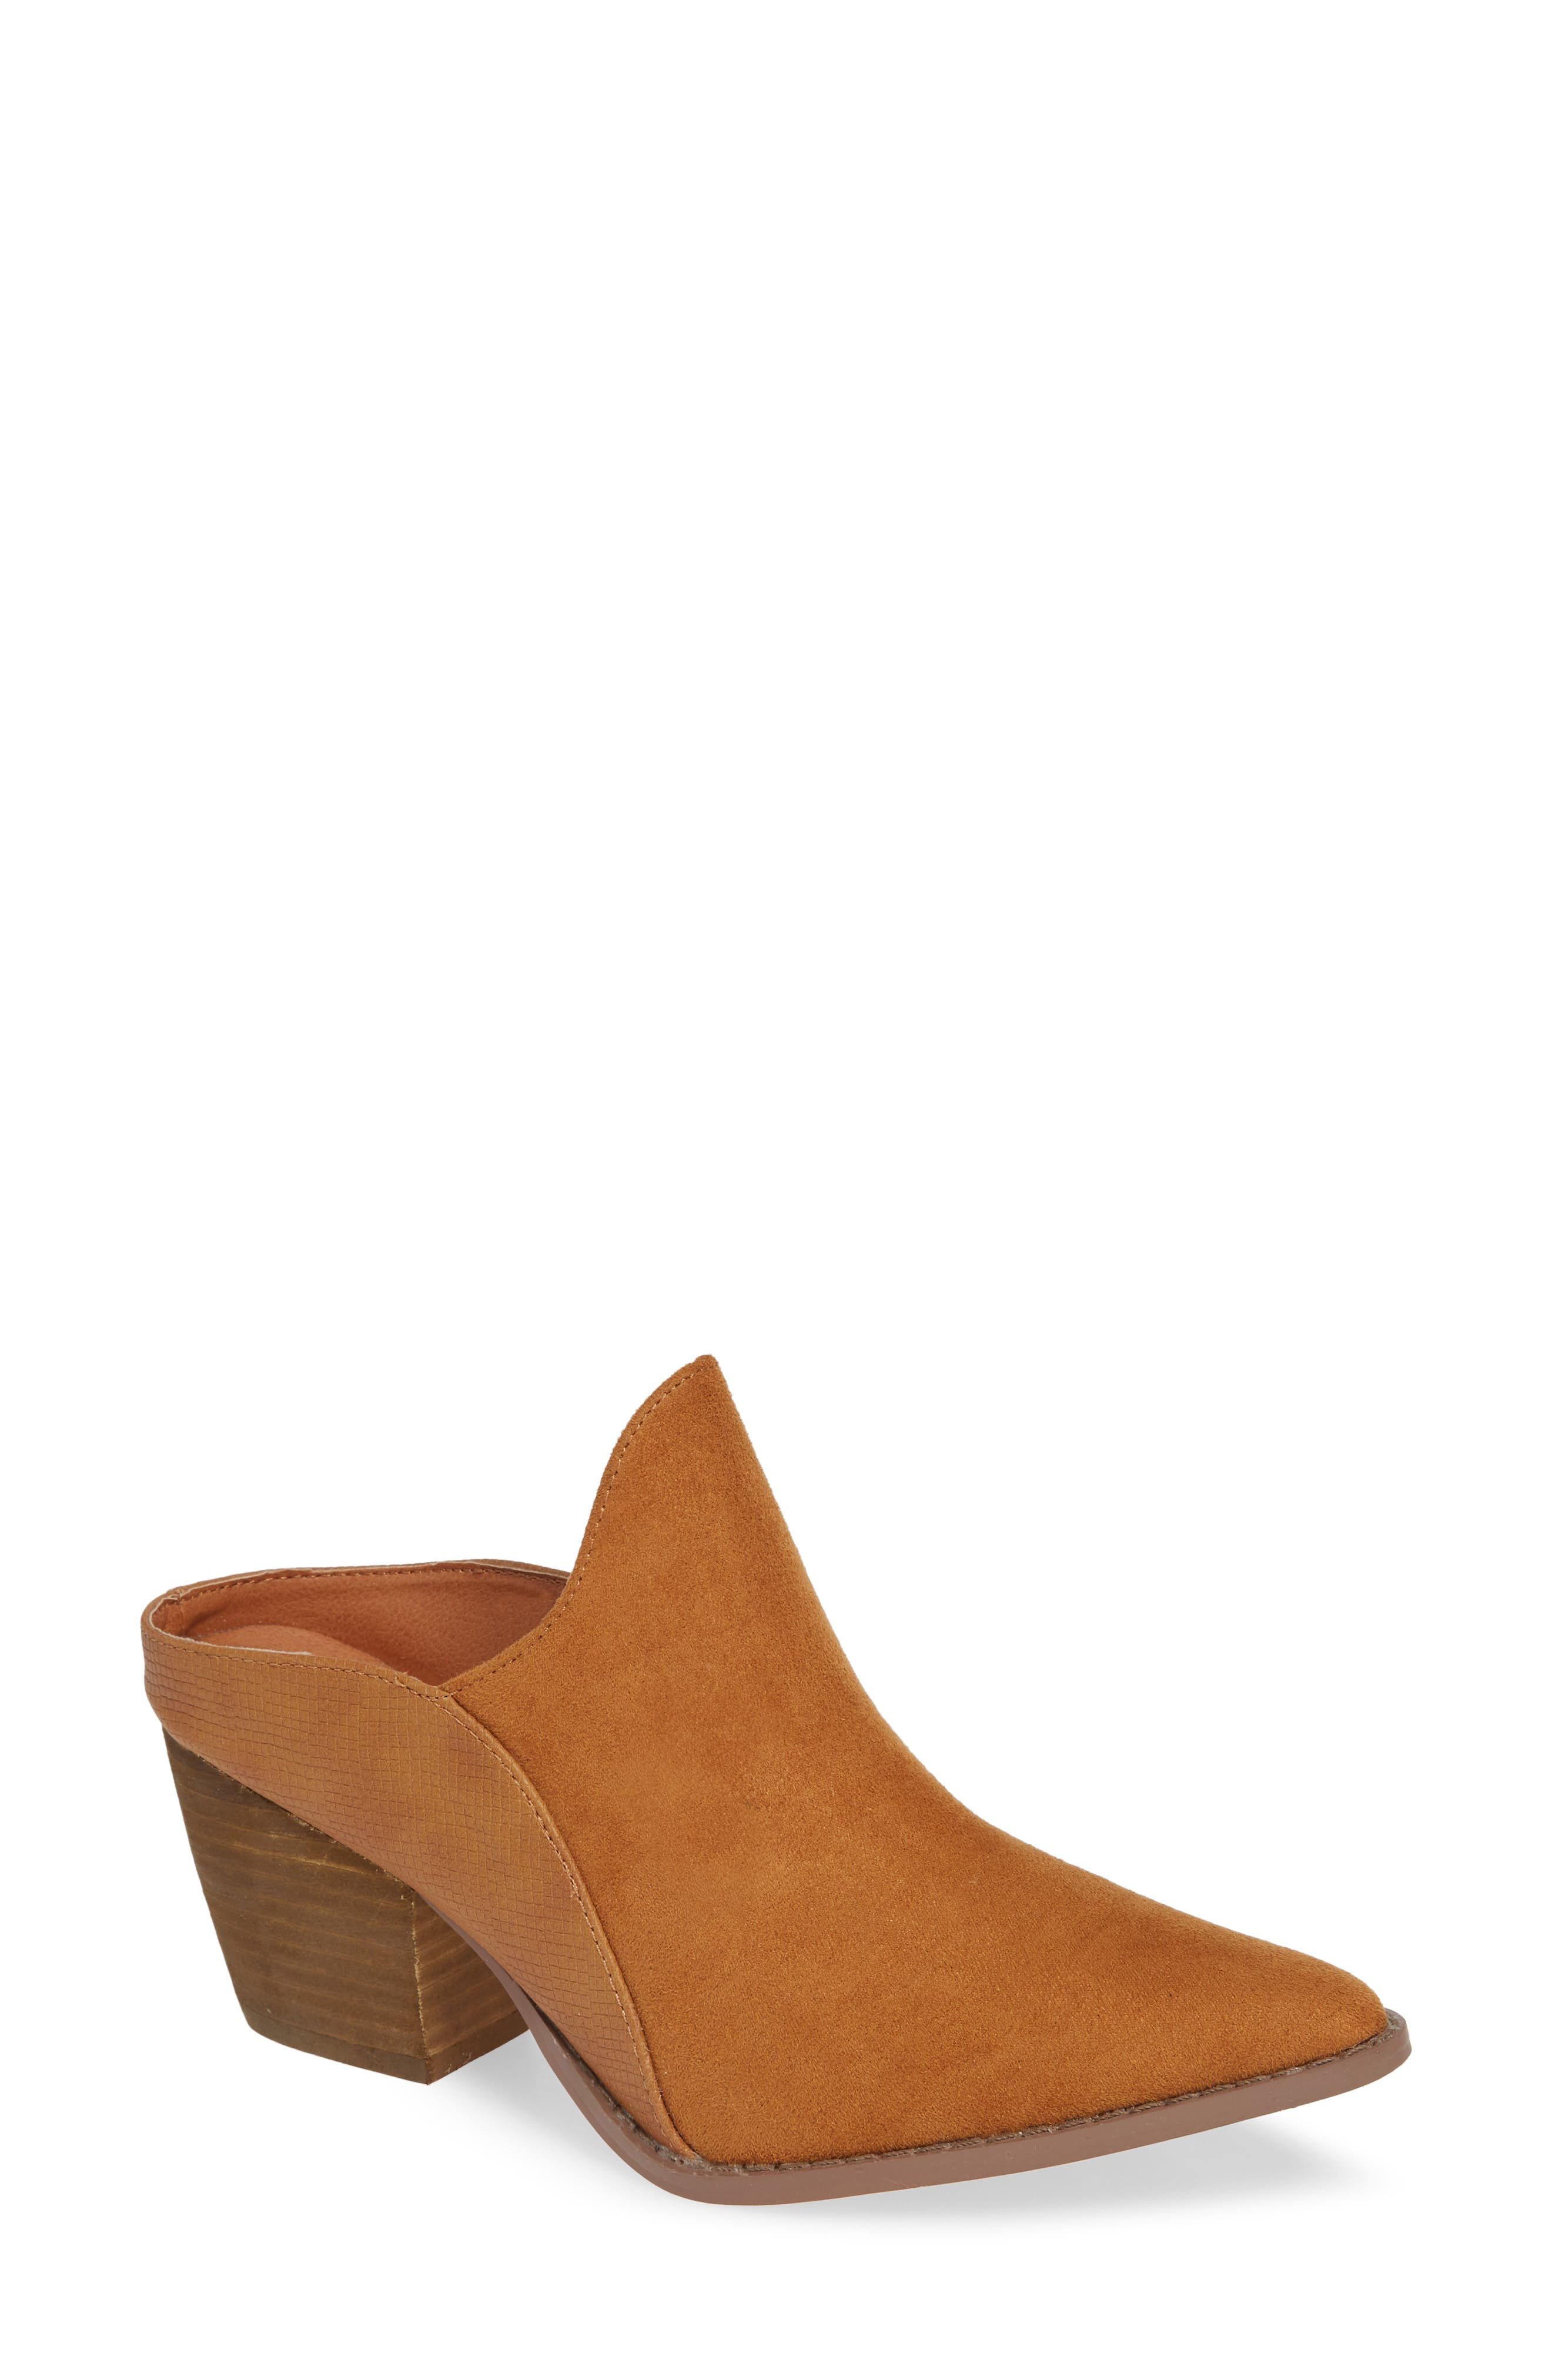 COCONUTS BY MATISSE,                             Leave it Mule,                             Main thumbnail 1, color,                             TAN